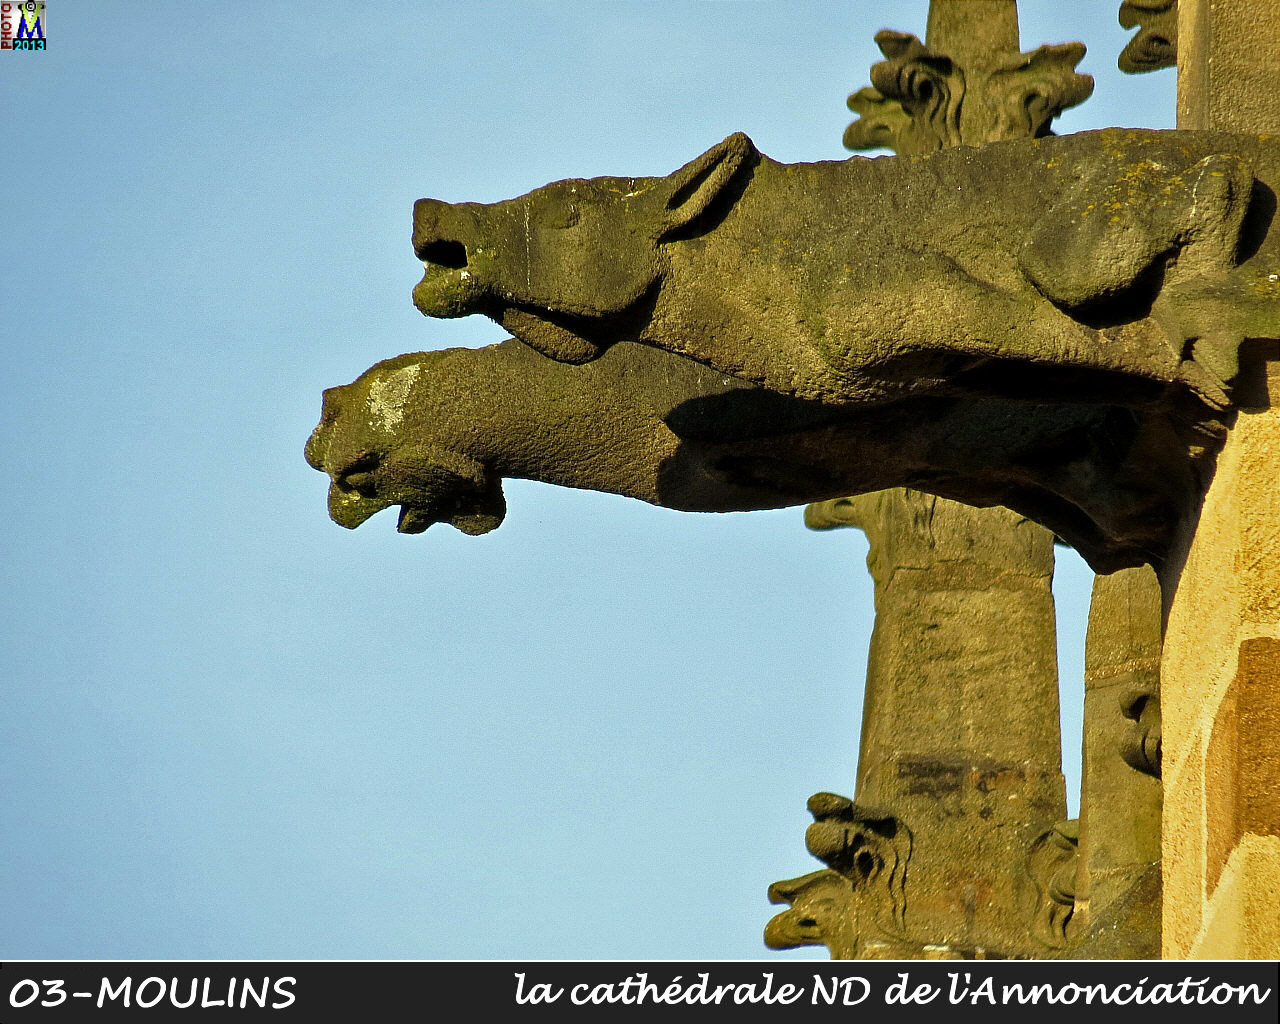 03MOULINS_cathedrale_128.jpg